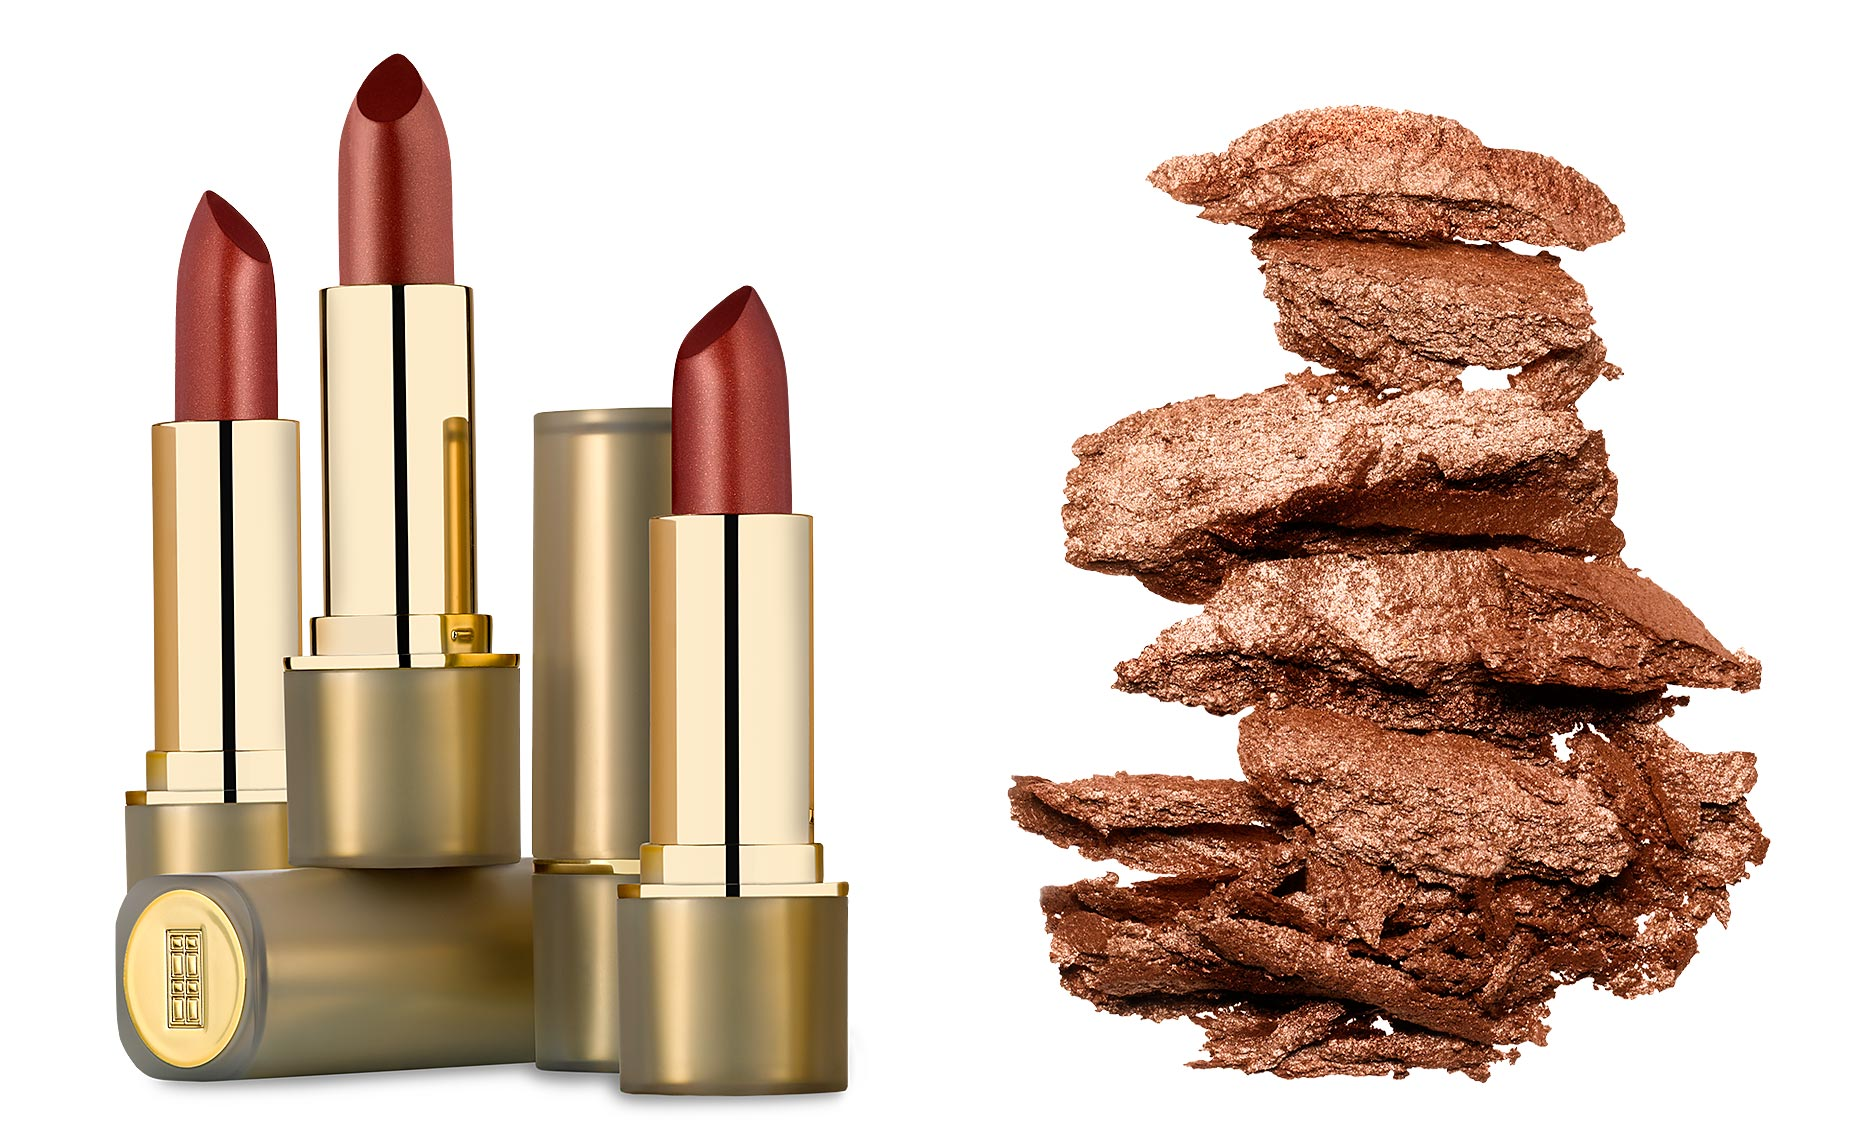 Elizabeth Arden lipsticks and bronzing powder